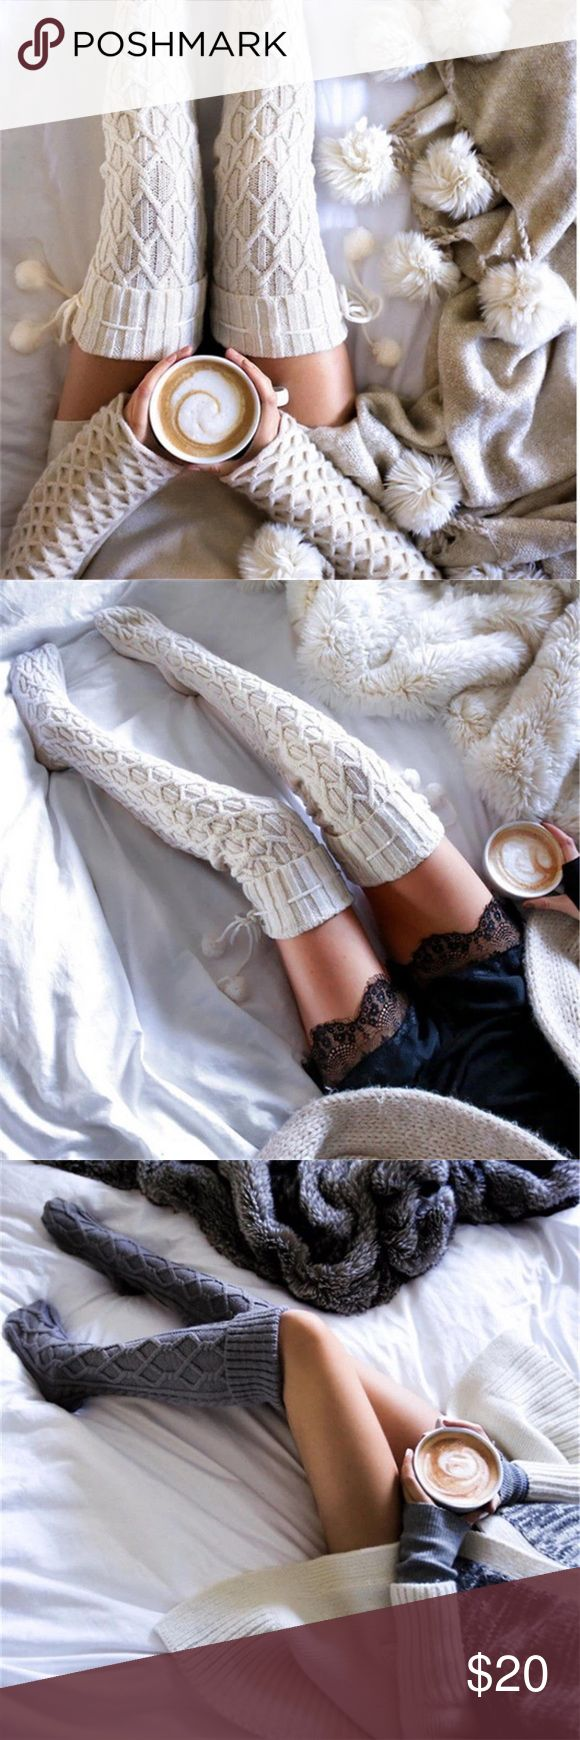 ❄️Plush White Pom Thigh High Socks❄️ AVAILABLE  Gorgeous thick white thigh high socks. Super cozy and comfortable. Pom. Fuzzy. Perfect for lounging around in and to keep you warm. Not from FP. No trades. Make offers through offer button Free People Accessories Hosiery & Socks